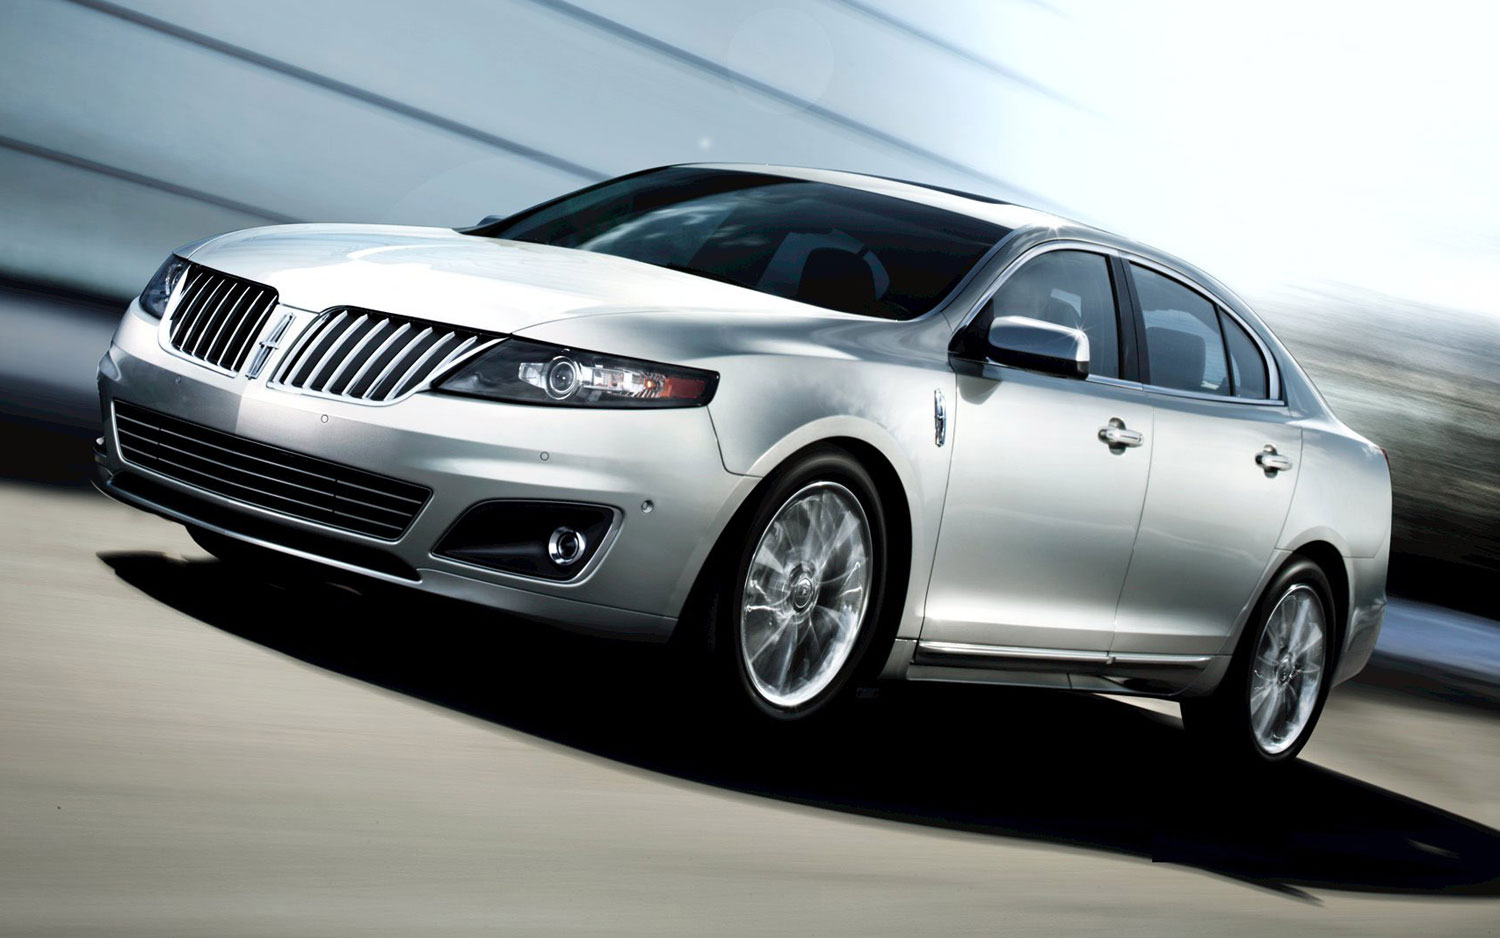 2011 Lincoln Mks Front Three Quarter1